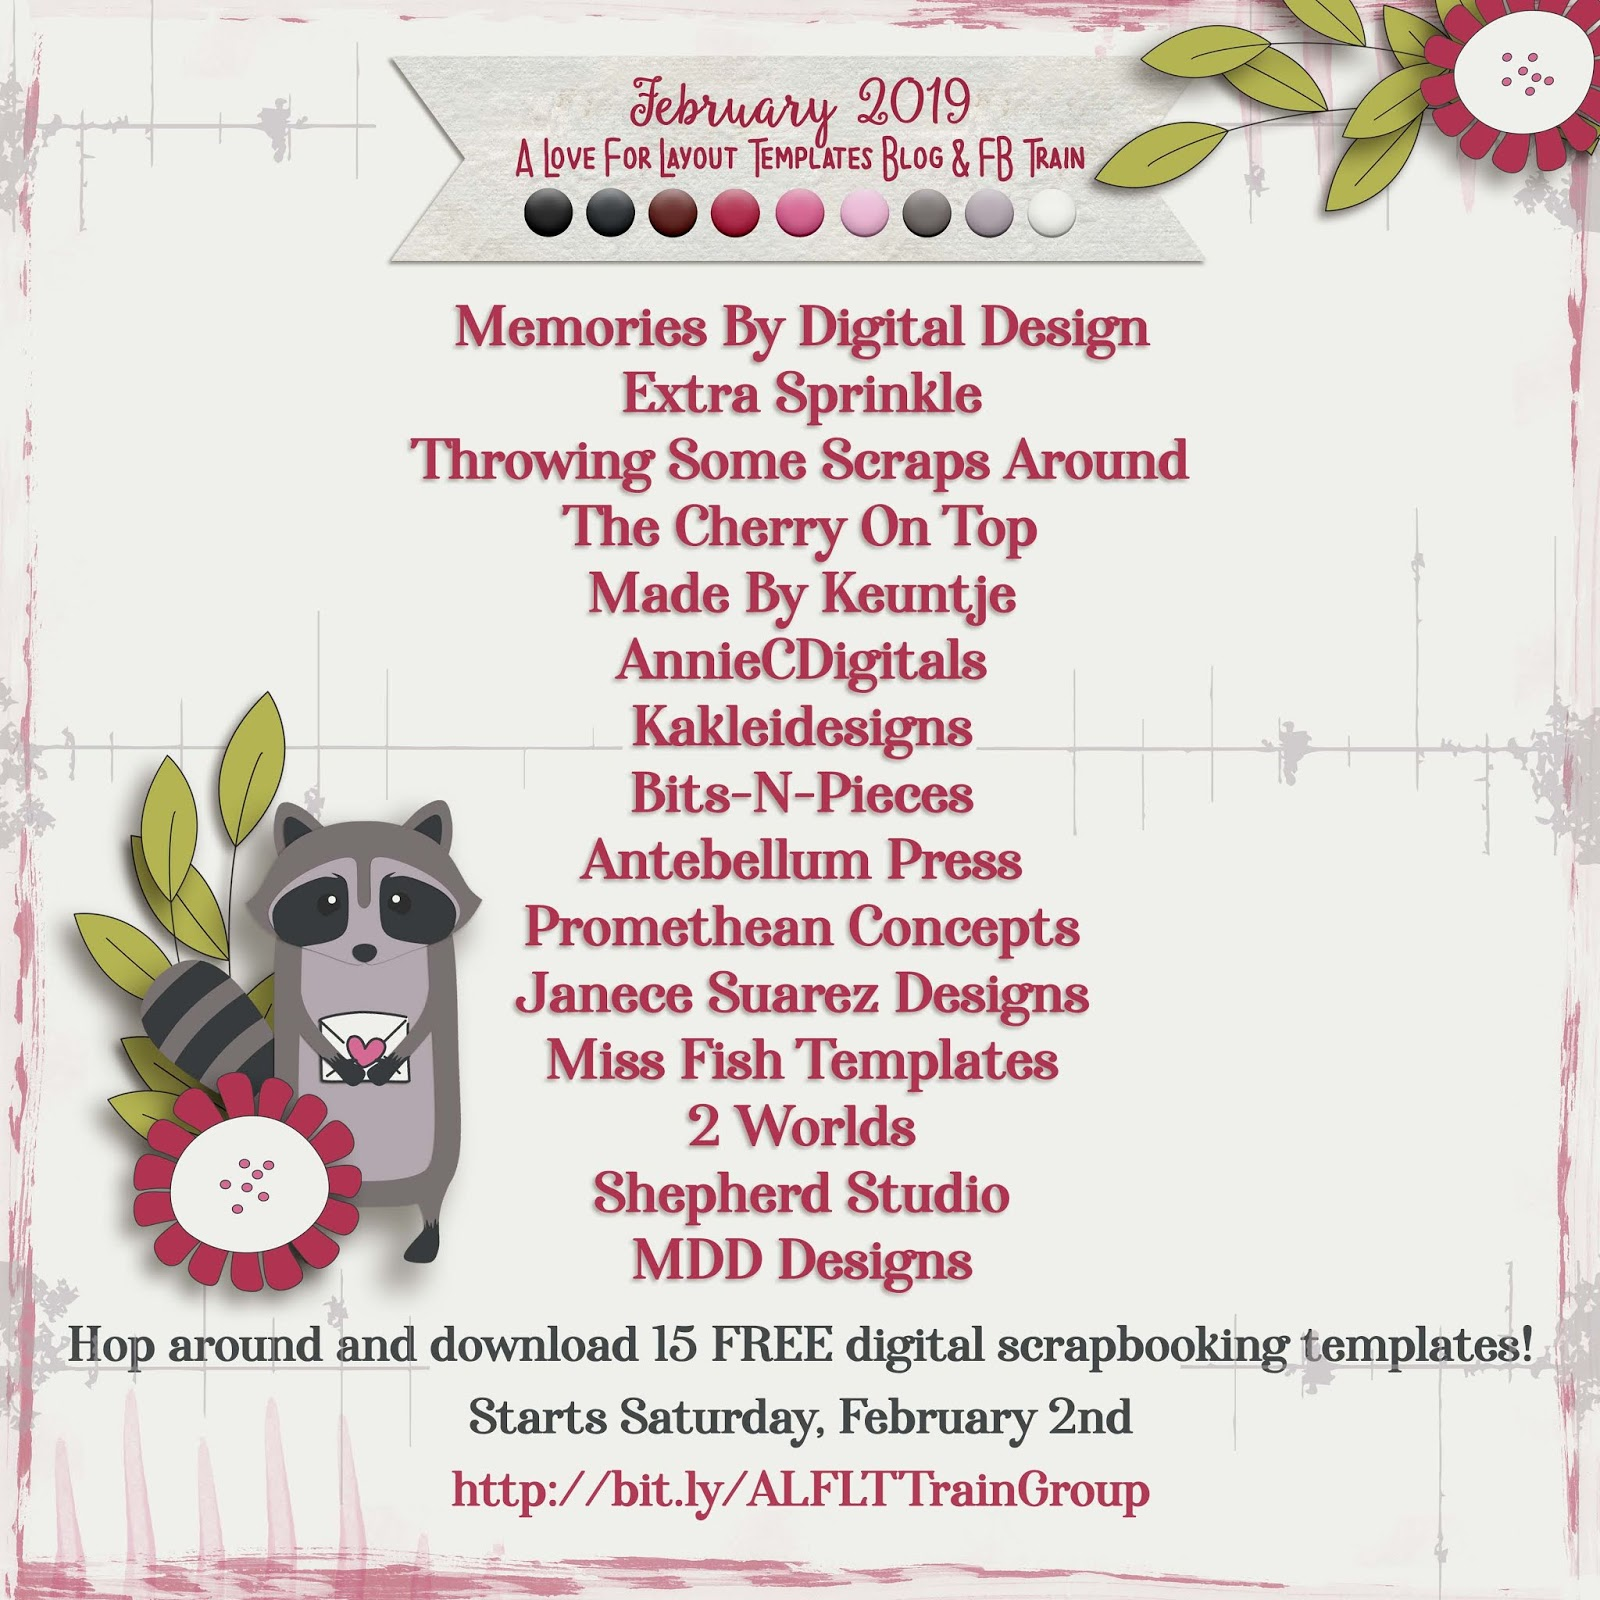 The Cherry On Top: Heartstrings Digital Scrapbooking Templates and